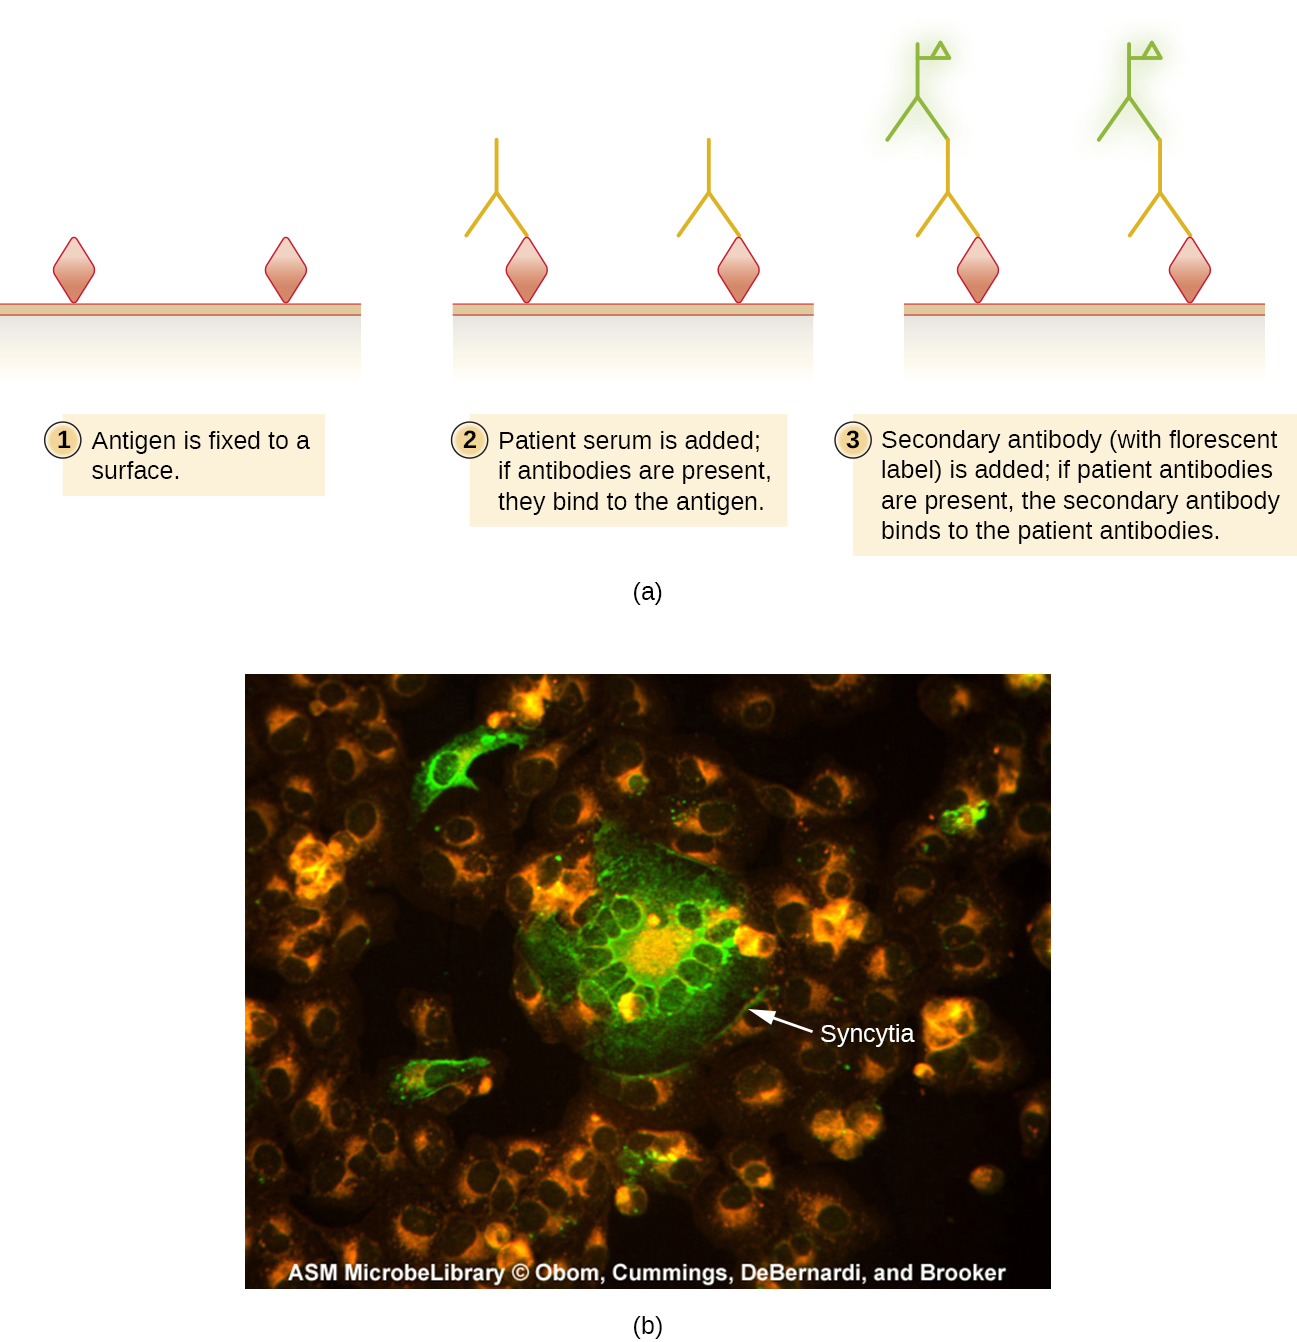 Panel (a) is a diagram depicting the procedure of indirect immunofluorescent assays. An unlabeled primary antibody binds to antigen on a microscope slide, then a secondary antibody, labeled with a fluorescent stain, binds the primary antibody. The complexes are visualized with a fluorescence microscope. Panel (b) is a fluorescence micrography of aAn indirect immunofluorescent stain using a patient's antibodies to the measles virus. The primary antibody binds to viral antigens on inactivated measles-infected cells affixed. Secondary antibodies bind the patient's antibodies and carry a fluorescent molecule.